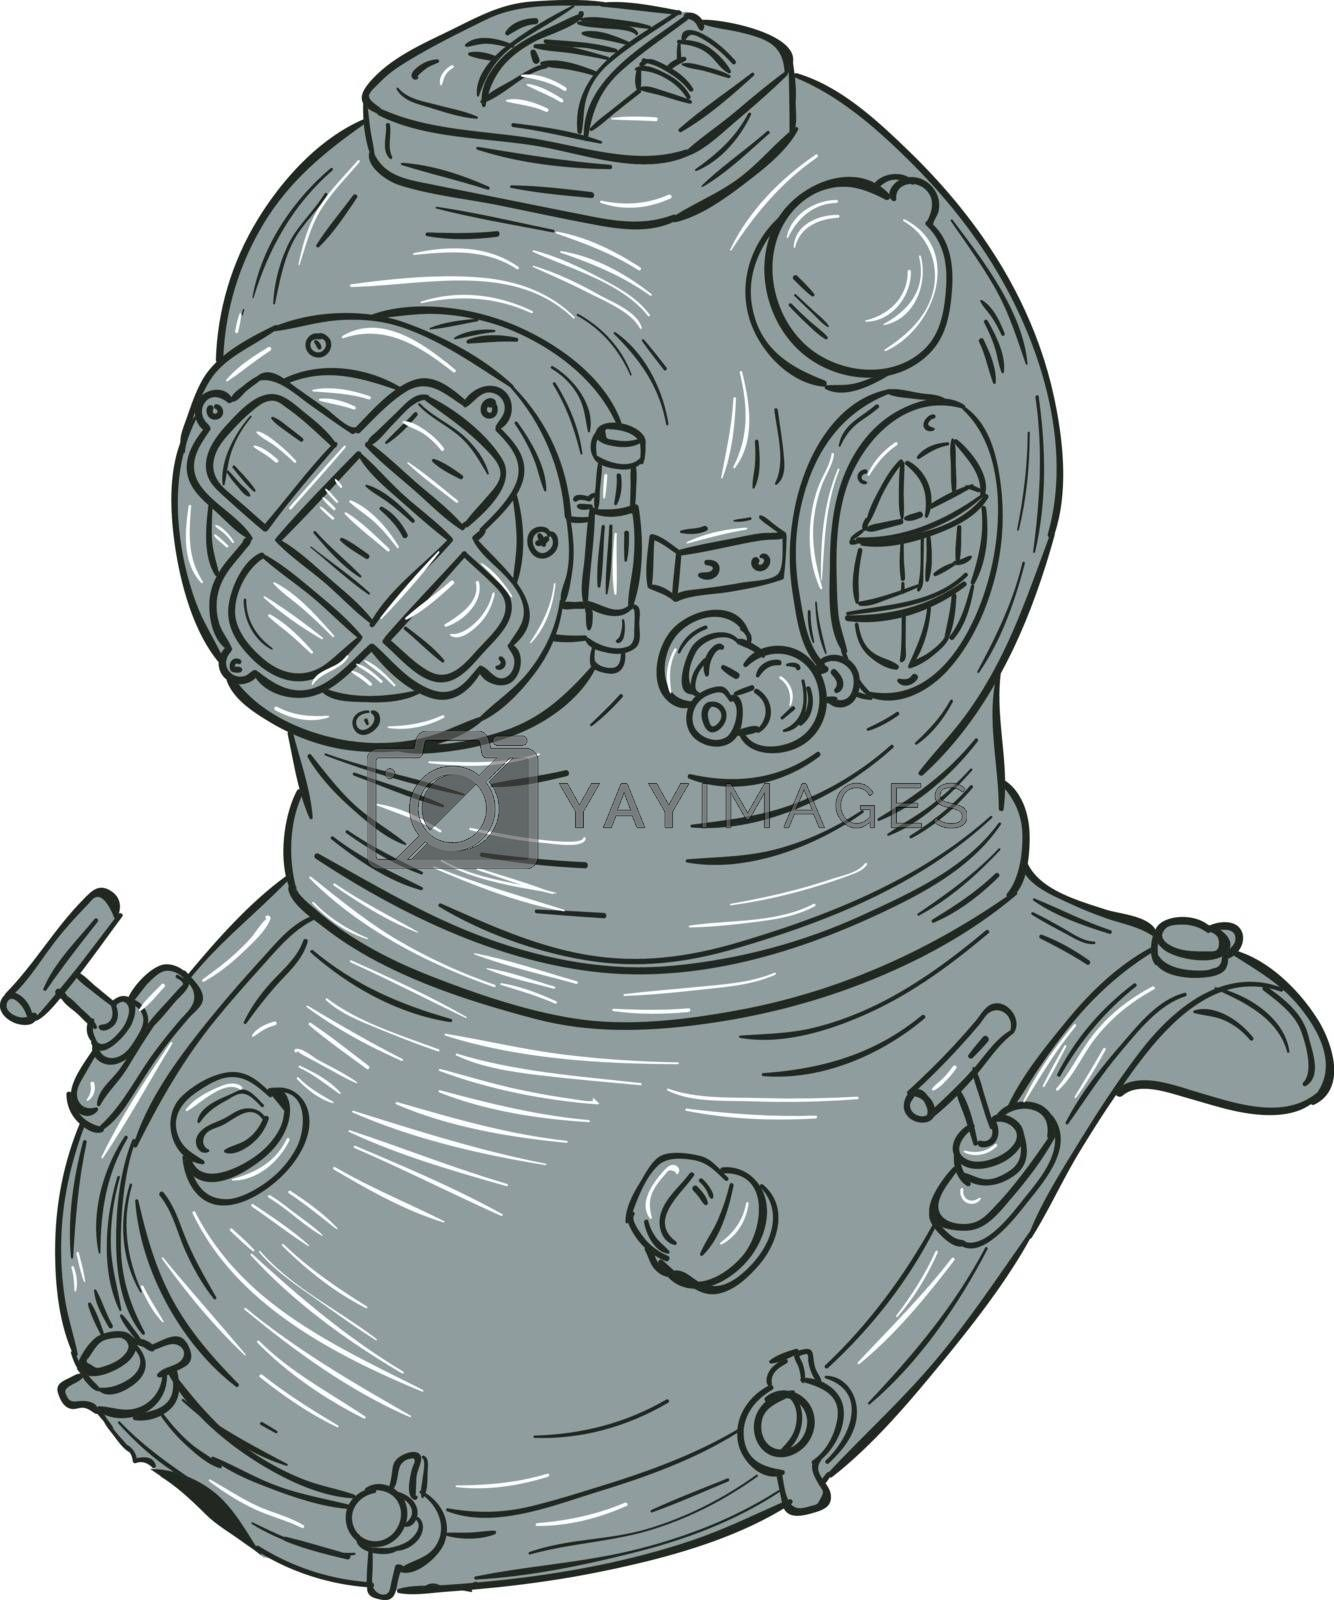 Drawing sketch style illustration of a copper and brass old school deep sea dive diving helmet or Standard diving helmet (Copper hat), worn mainly by professional divers engaged in surface supplied diving set on isolated white background.